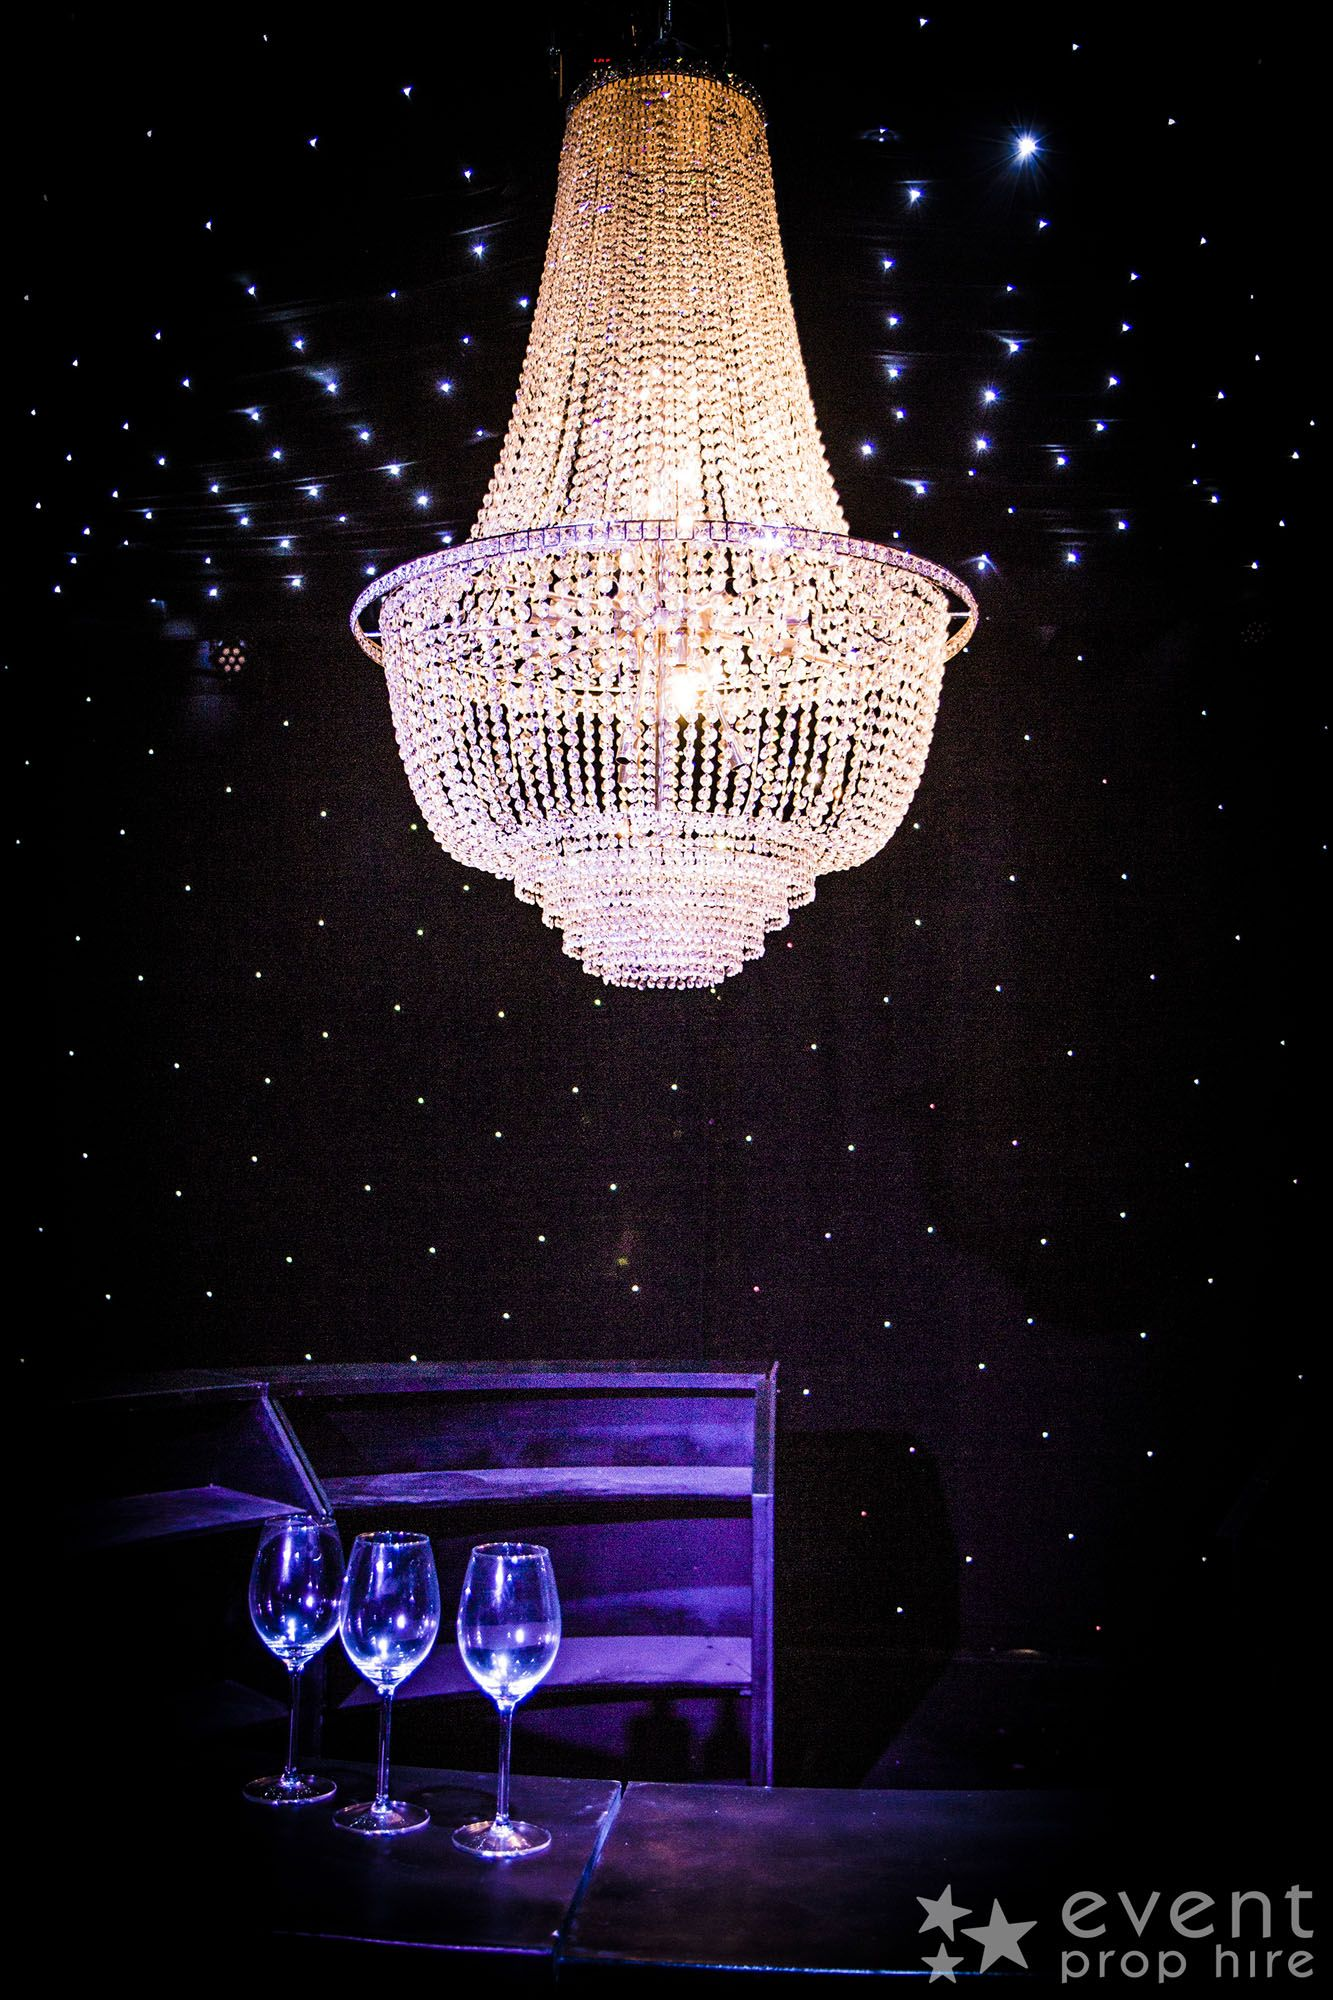 Crystal Chandelier available to hire (LE24)!  This large Crystal Chandelier would add more than a touch of class to any wedding, bling or glamorous themed event, adding light, sparkle and a sense of grandeur to any event!  Take a look at some more of our glamour themed props!